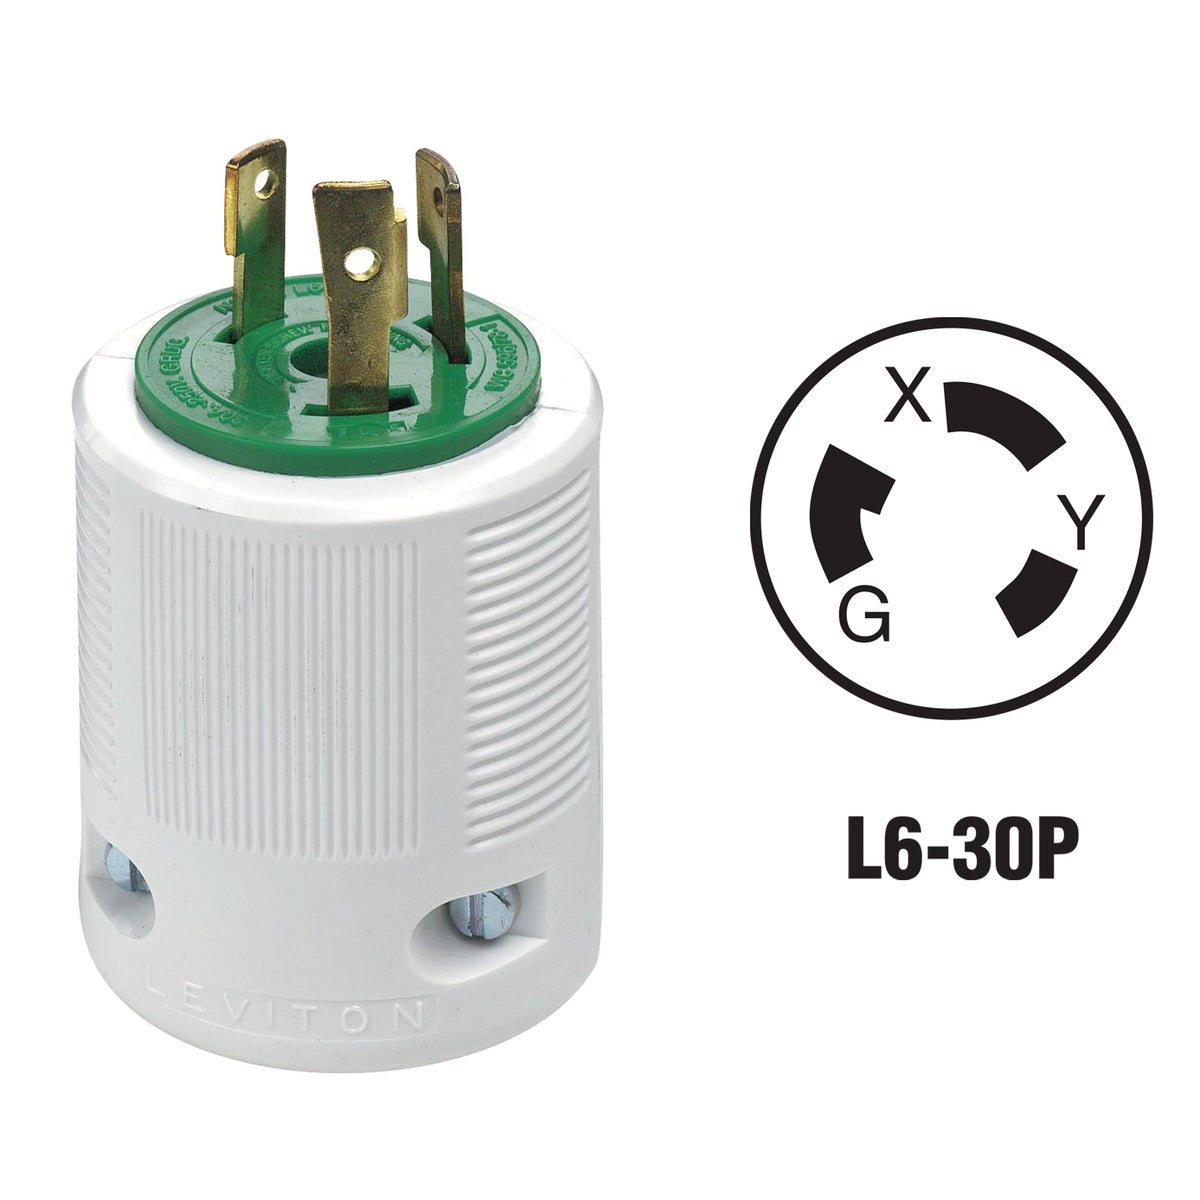 30A LOCKING CORD PLUG - 022-70630LP by Leviton Mfg Co